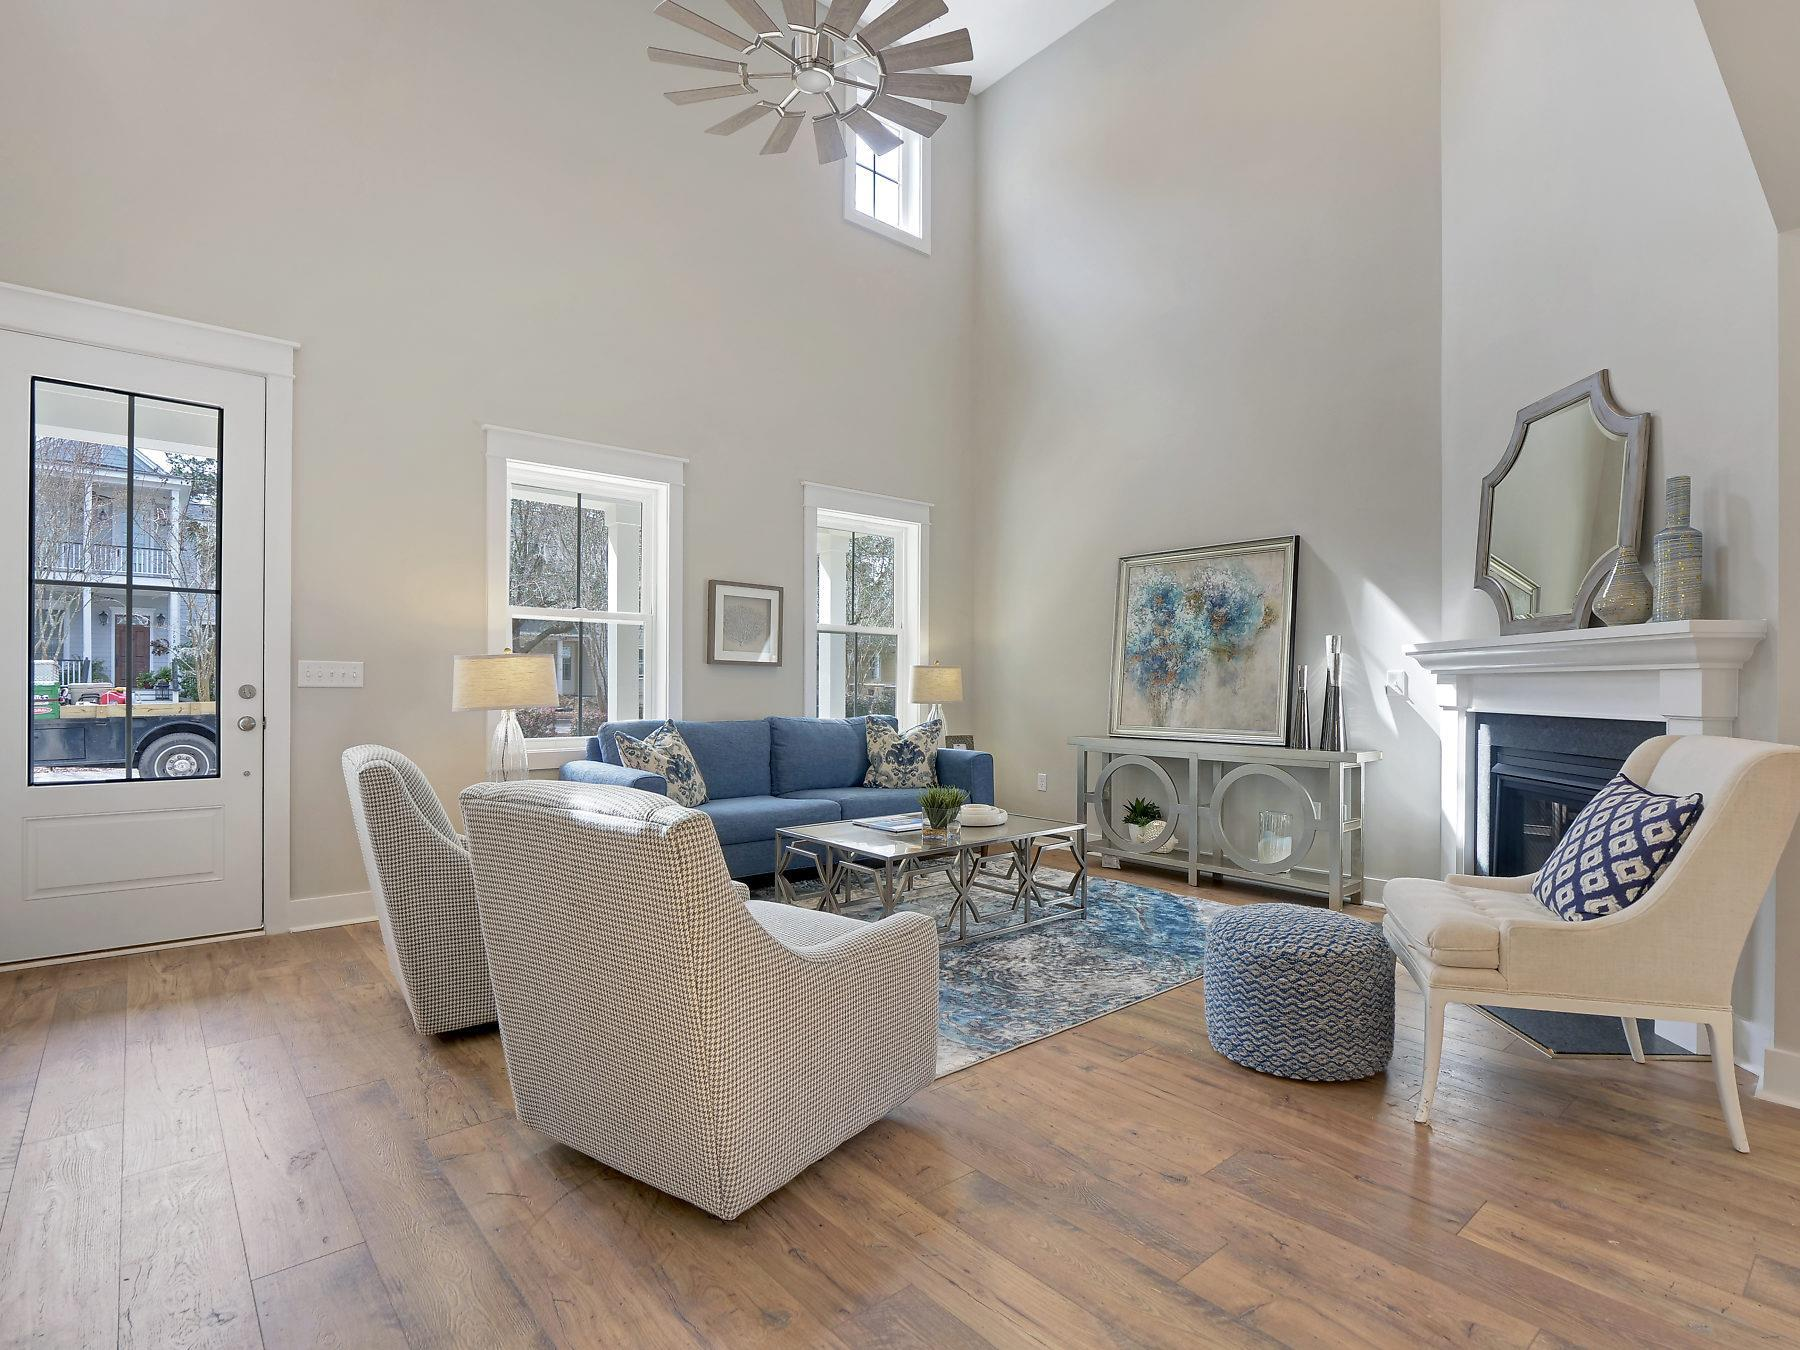 Living Area featured in The Ashley River II By Village Park Homes in Hilton Head, SC